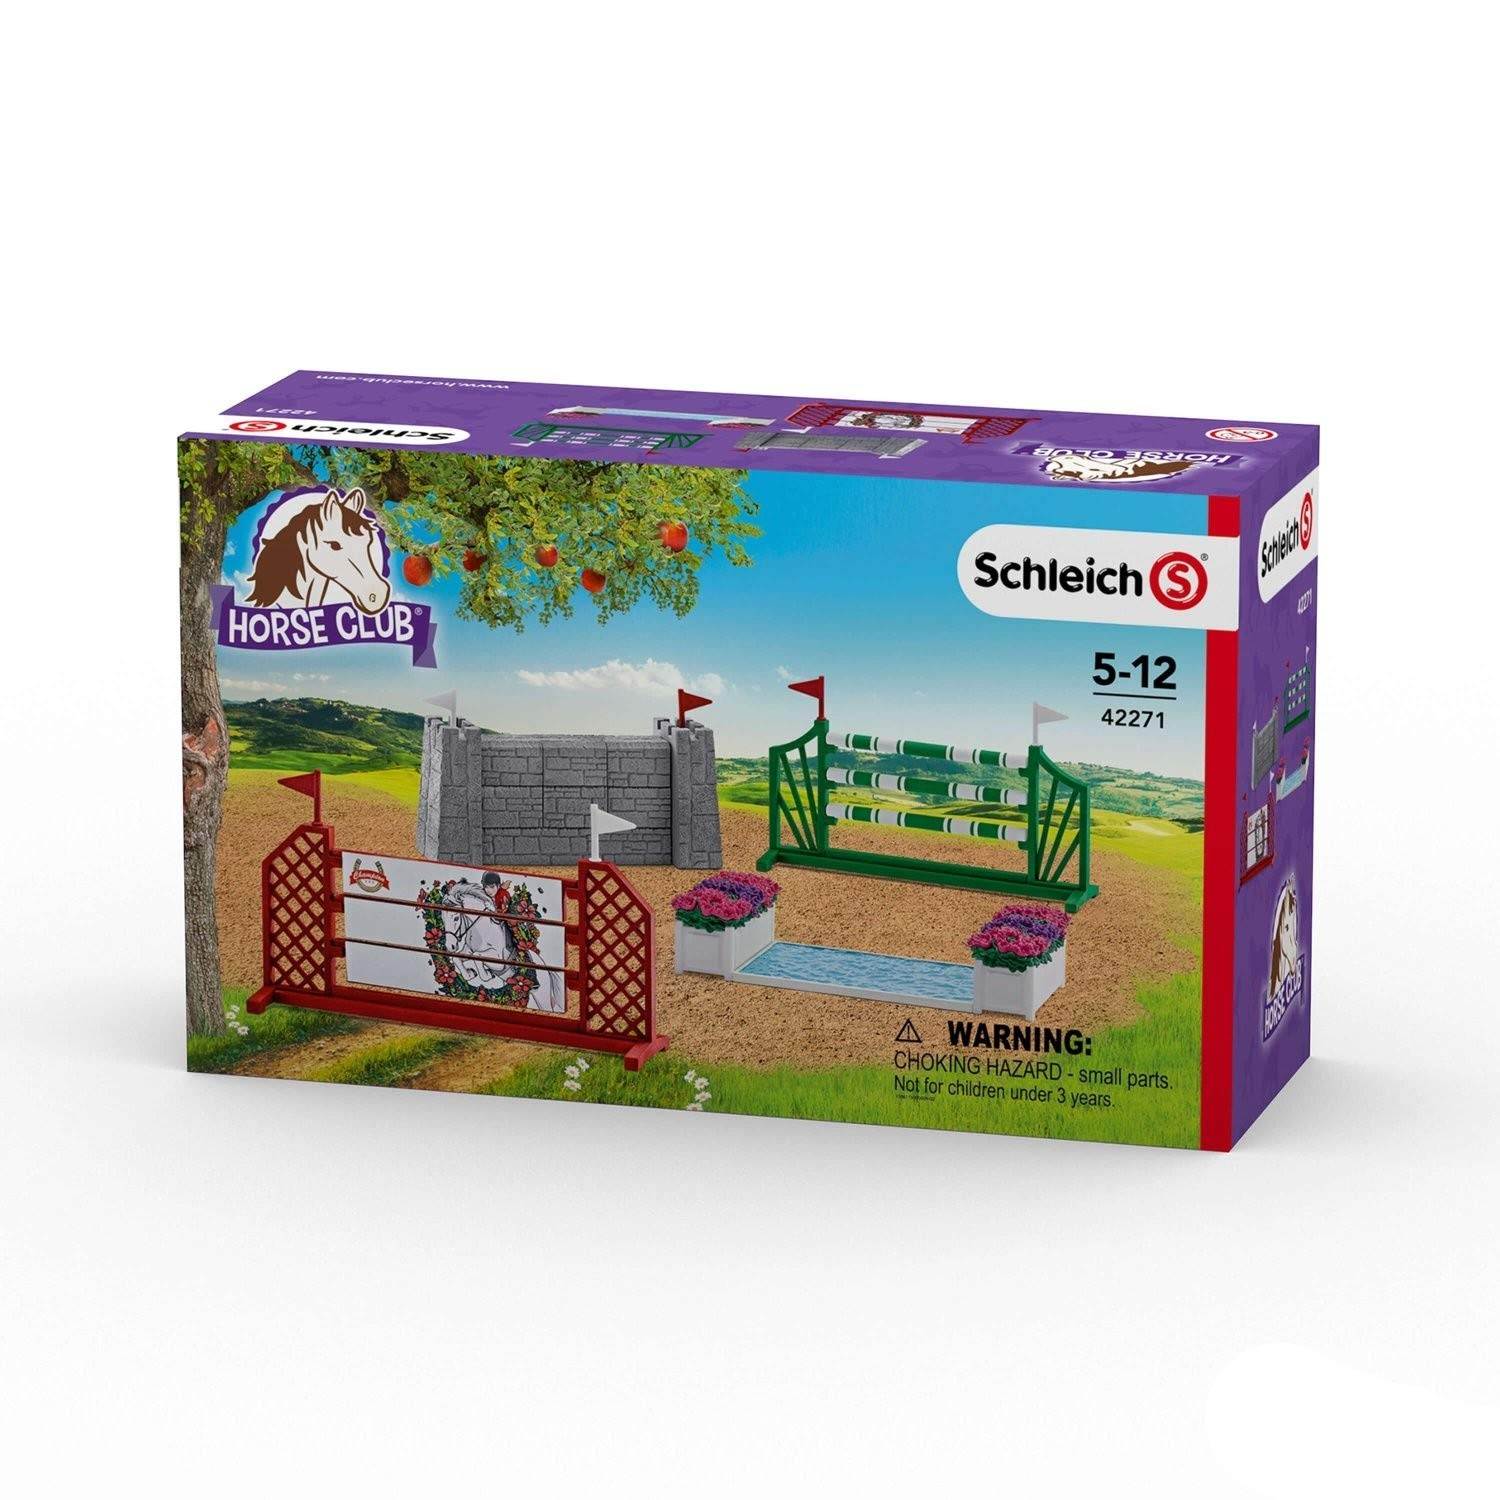 Schleich Showjumping Course Play Set by Schleich